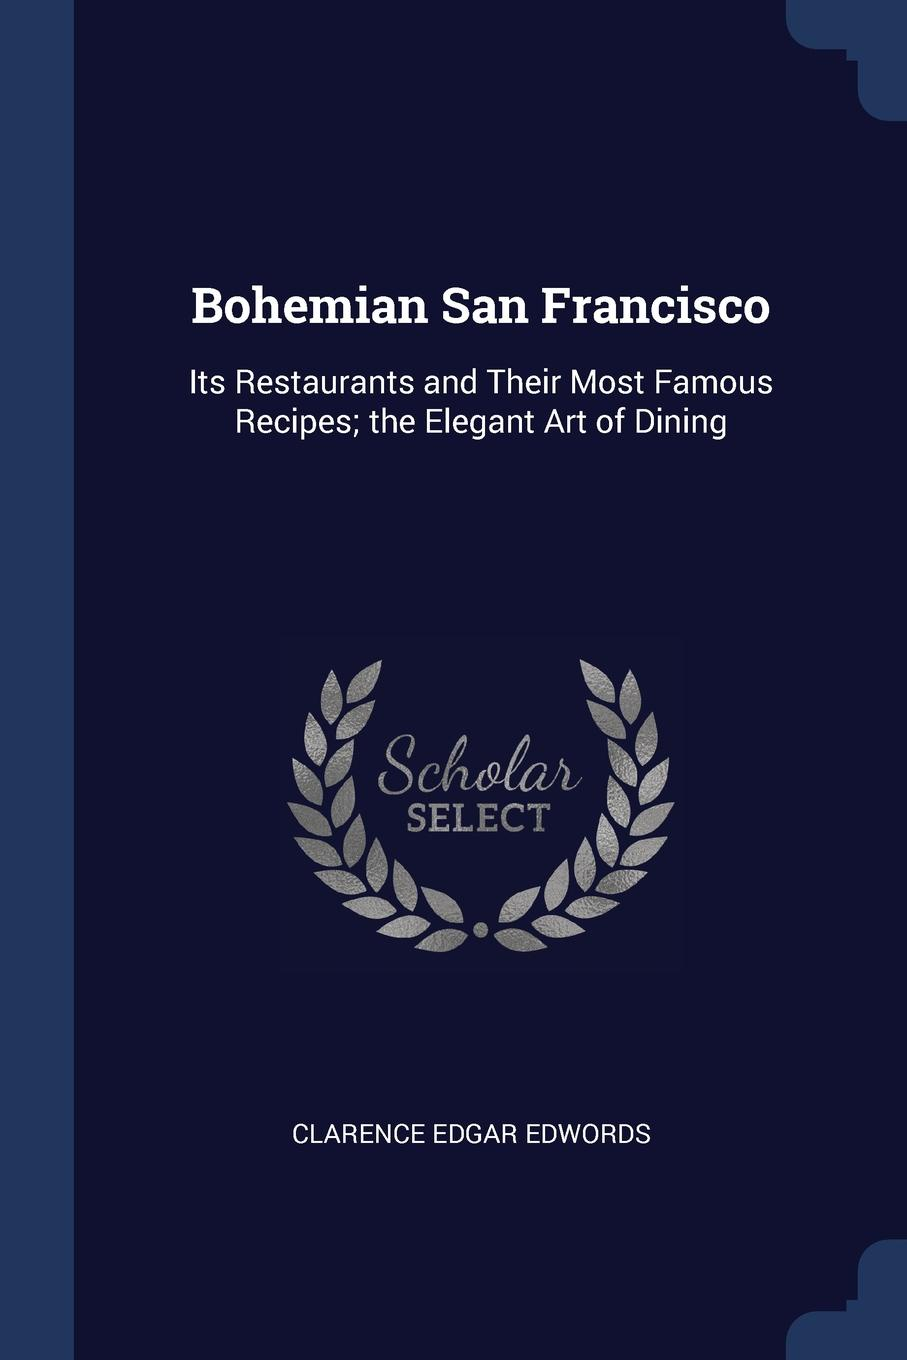 Clarence Edgar Edwords Bohemian San Francisco. Its Restaurants and Their Most Famous Recipes; the Elegant Art of Dining